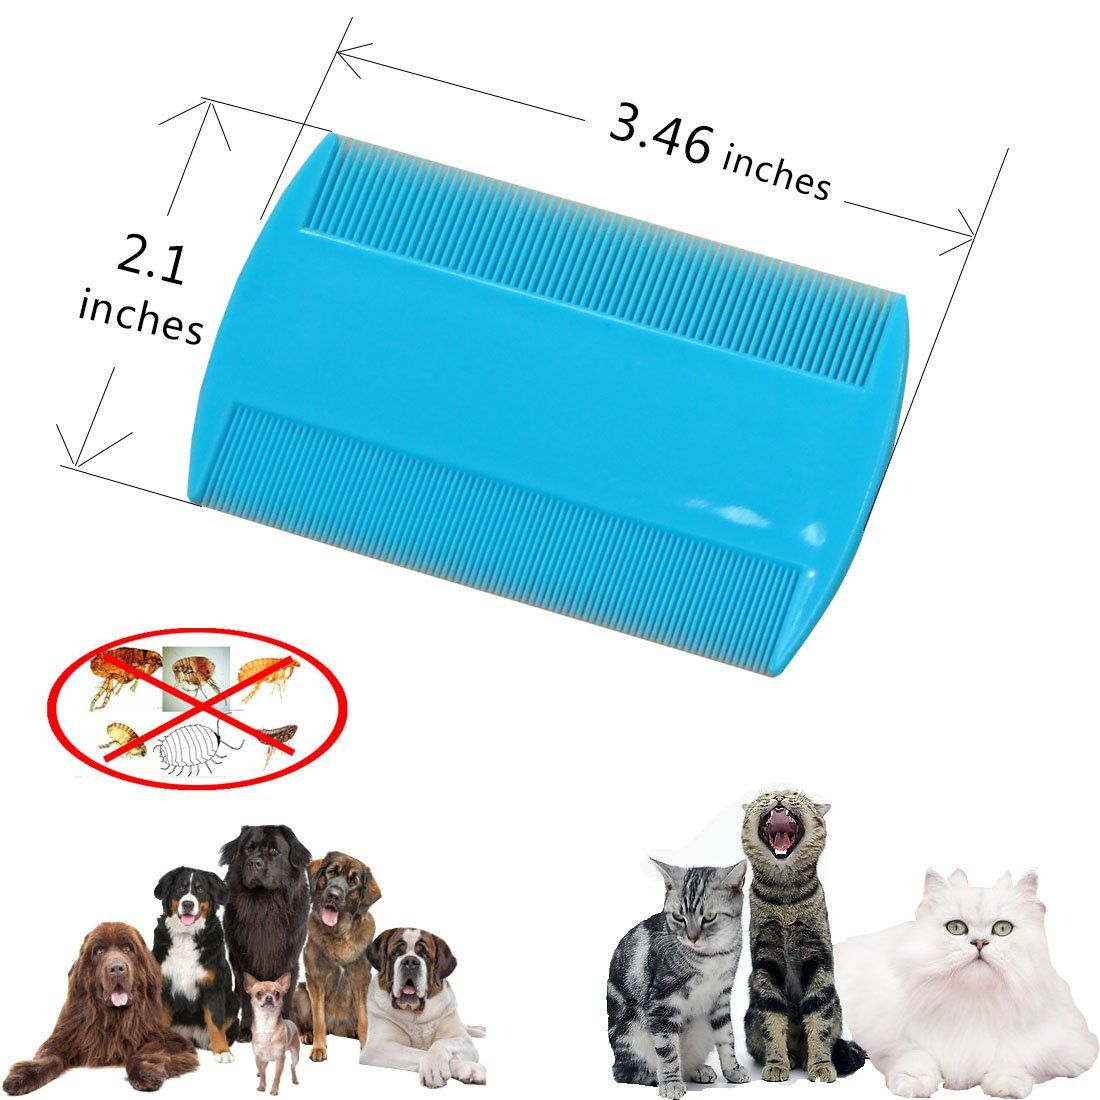 Sonki Pet Dog Hair Flea Comb Stainless Pin Dog Cat Grooming Tick Lice Comb Clean Tool 3 Pcs You Can Get More Information In 2020 Cat Grooming Dog Hair Dog Grooming